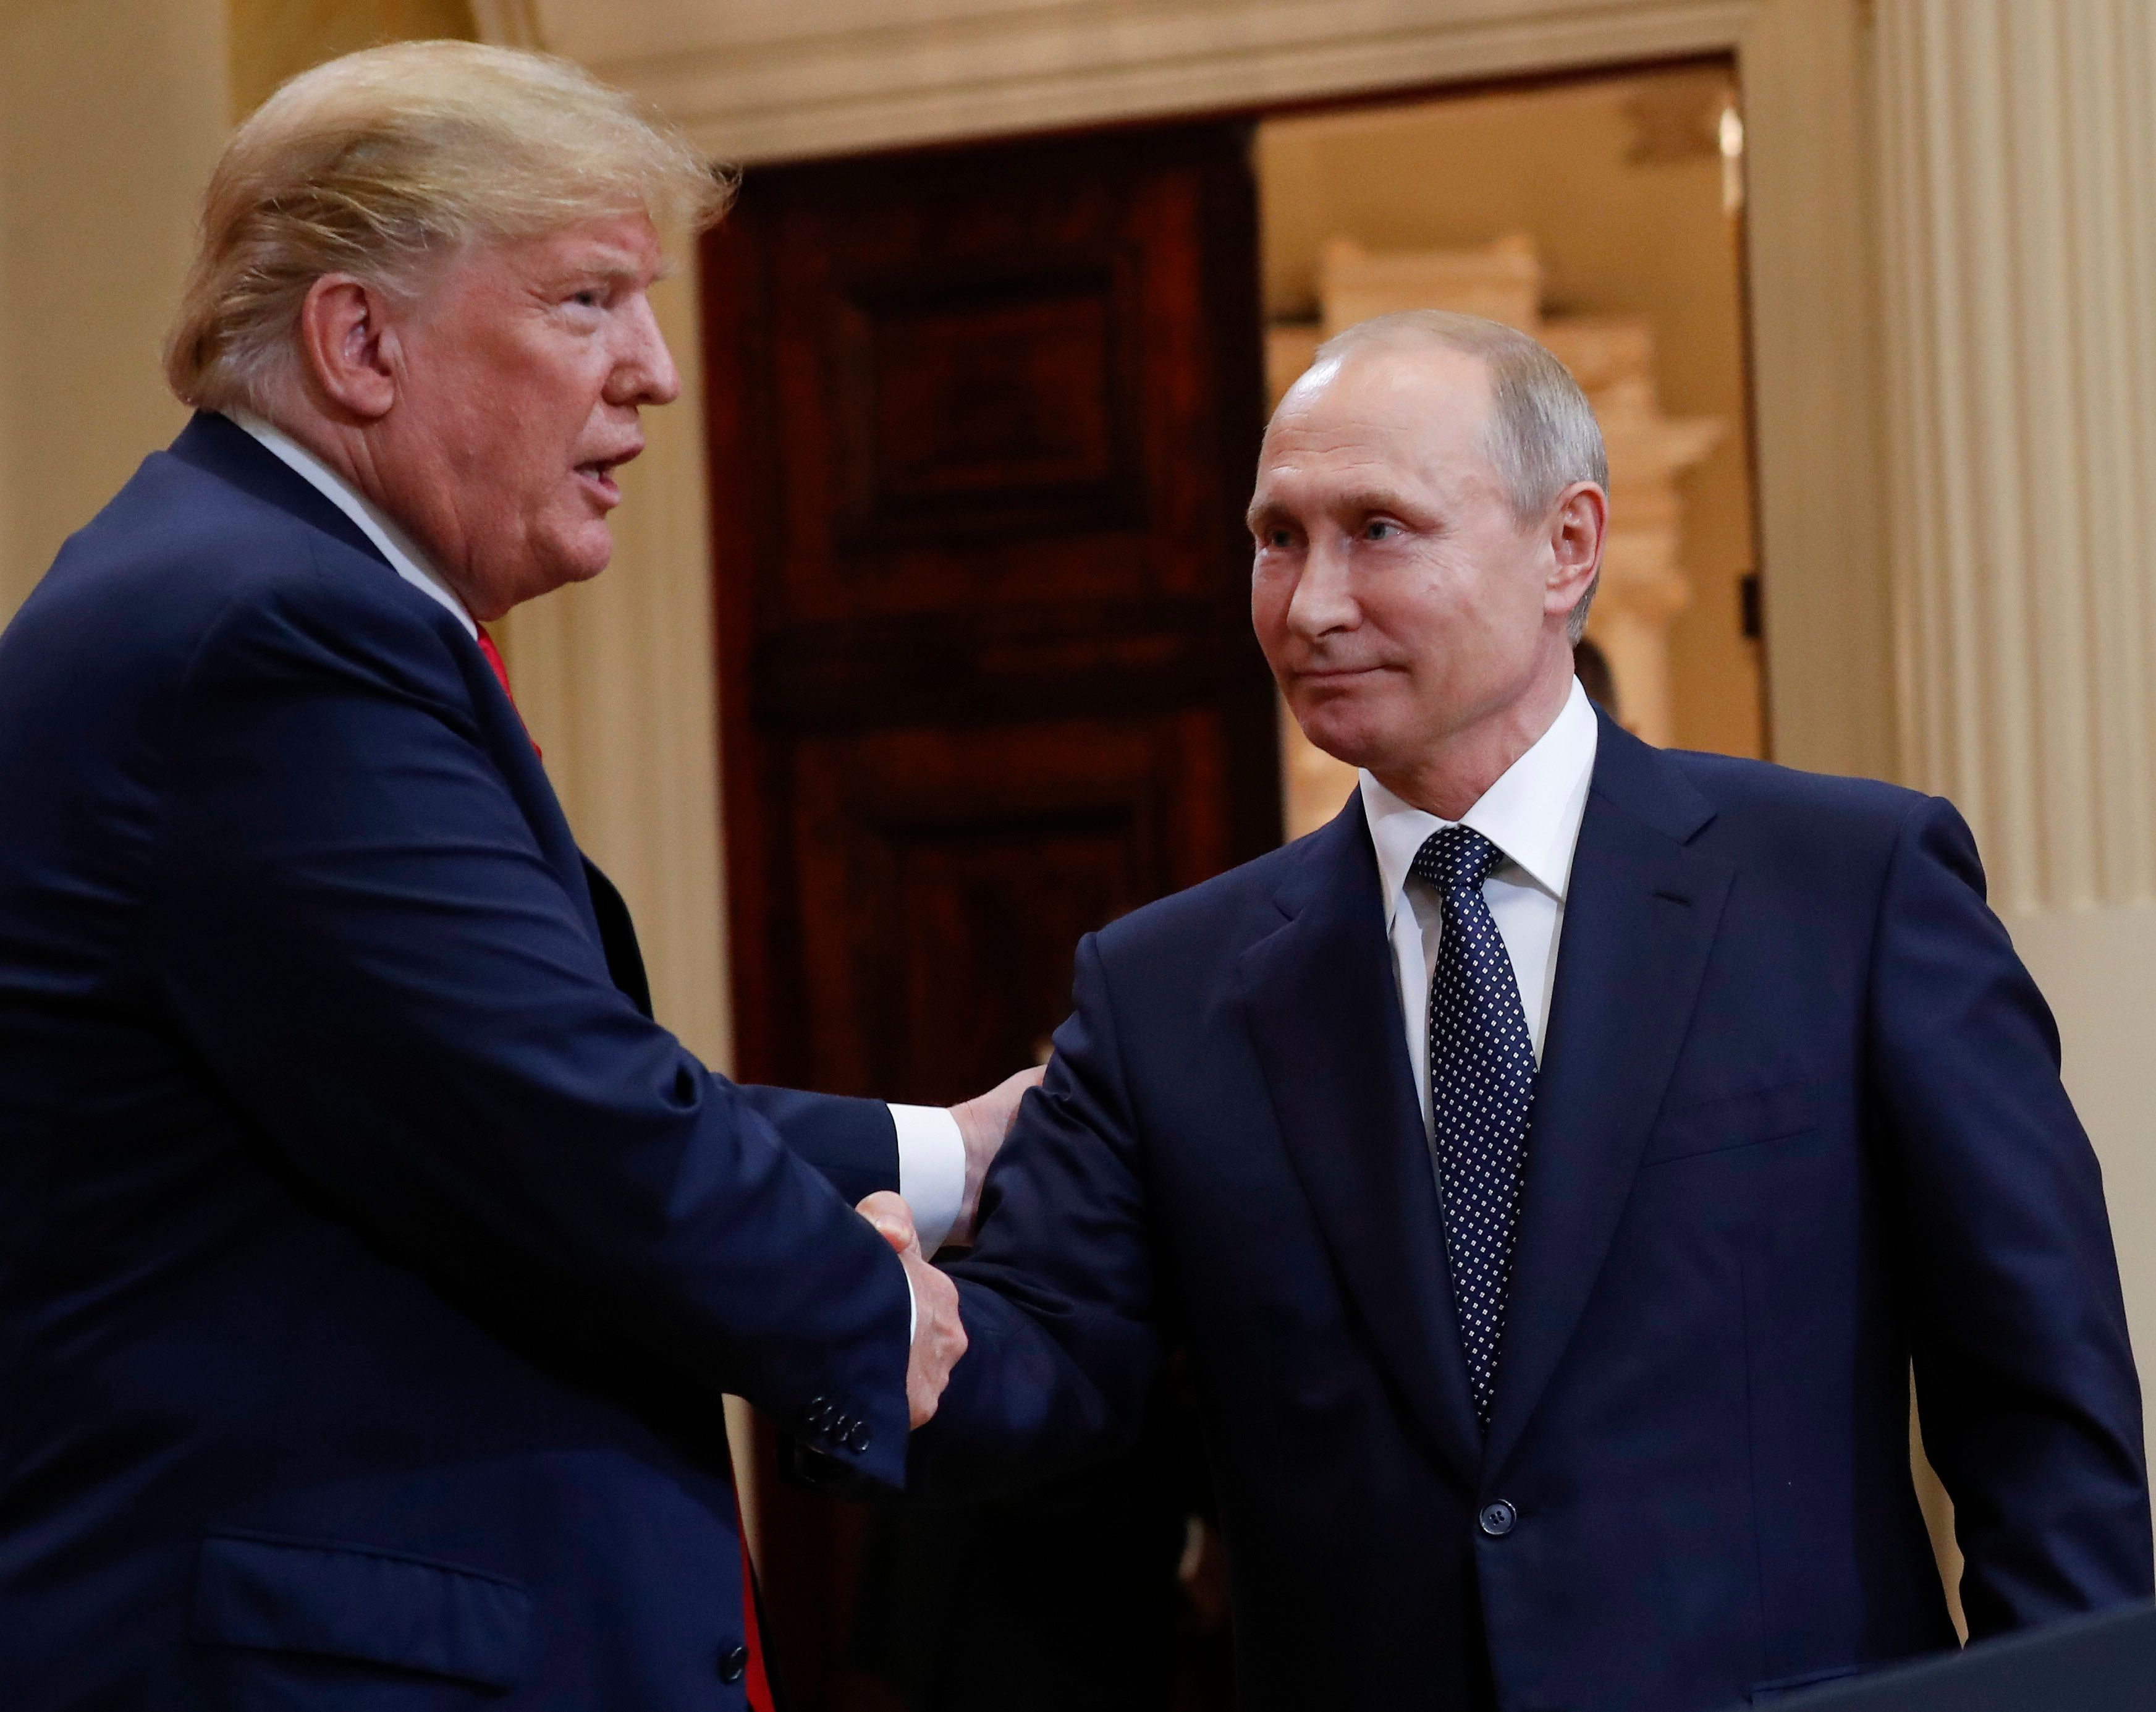 Westlake Legal Group 5c4332b8230000f8001f9f53 Opinion | Democrats Need To Start Trump-Russia Hearings Now